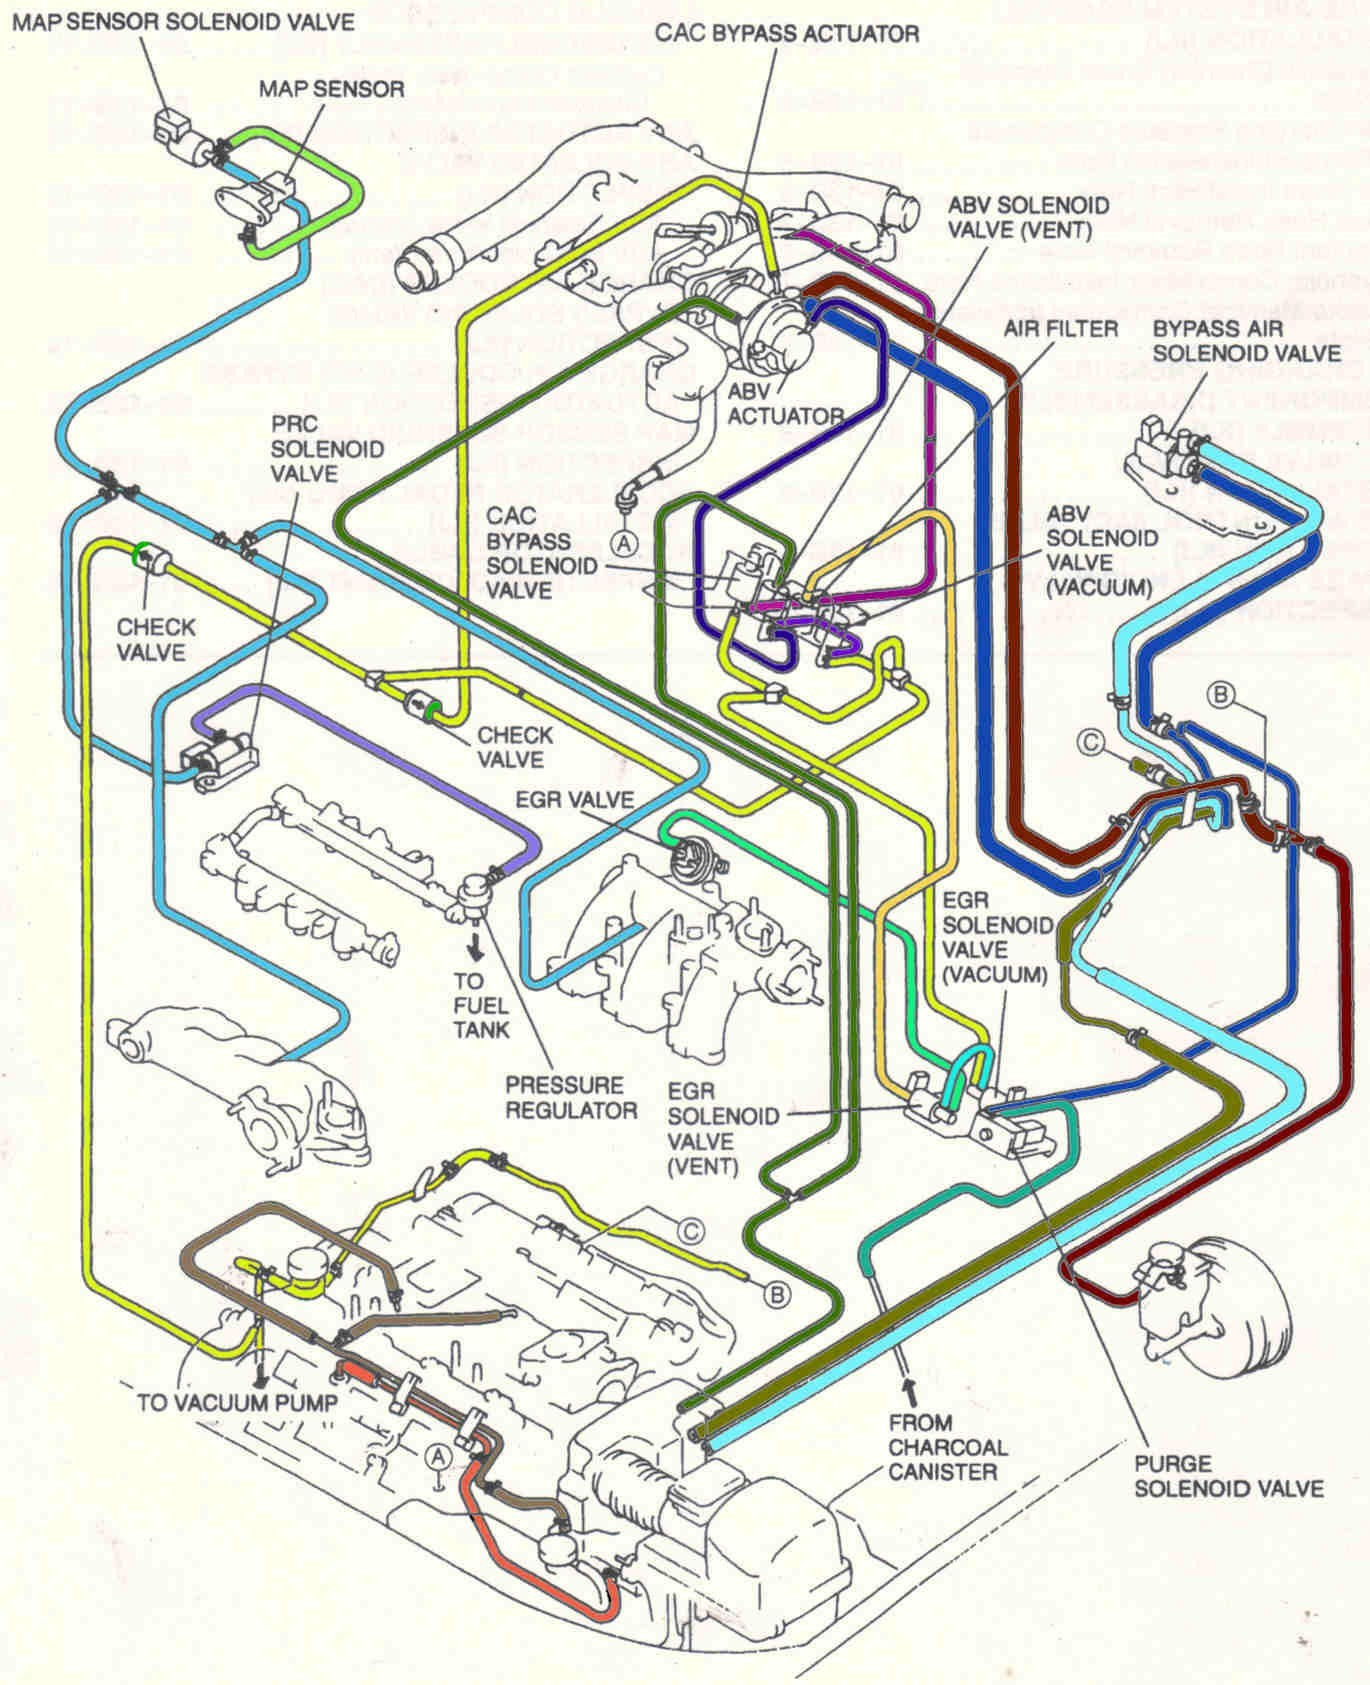 hight resolution of 2001 mazda mpv engine diagram 2000 mazda millenia s rmp won t pass 2000 mazda forum